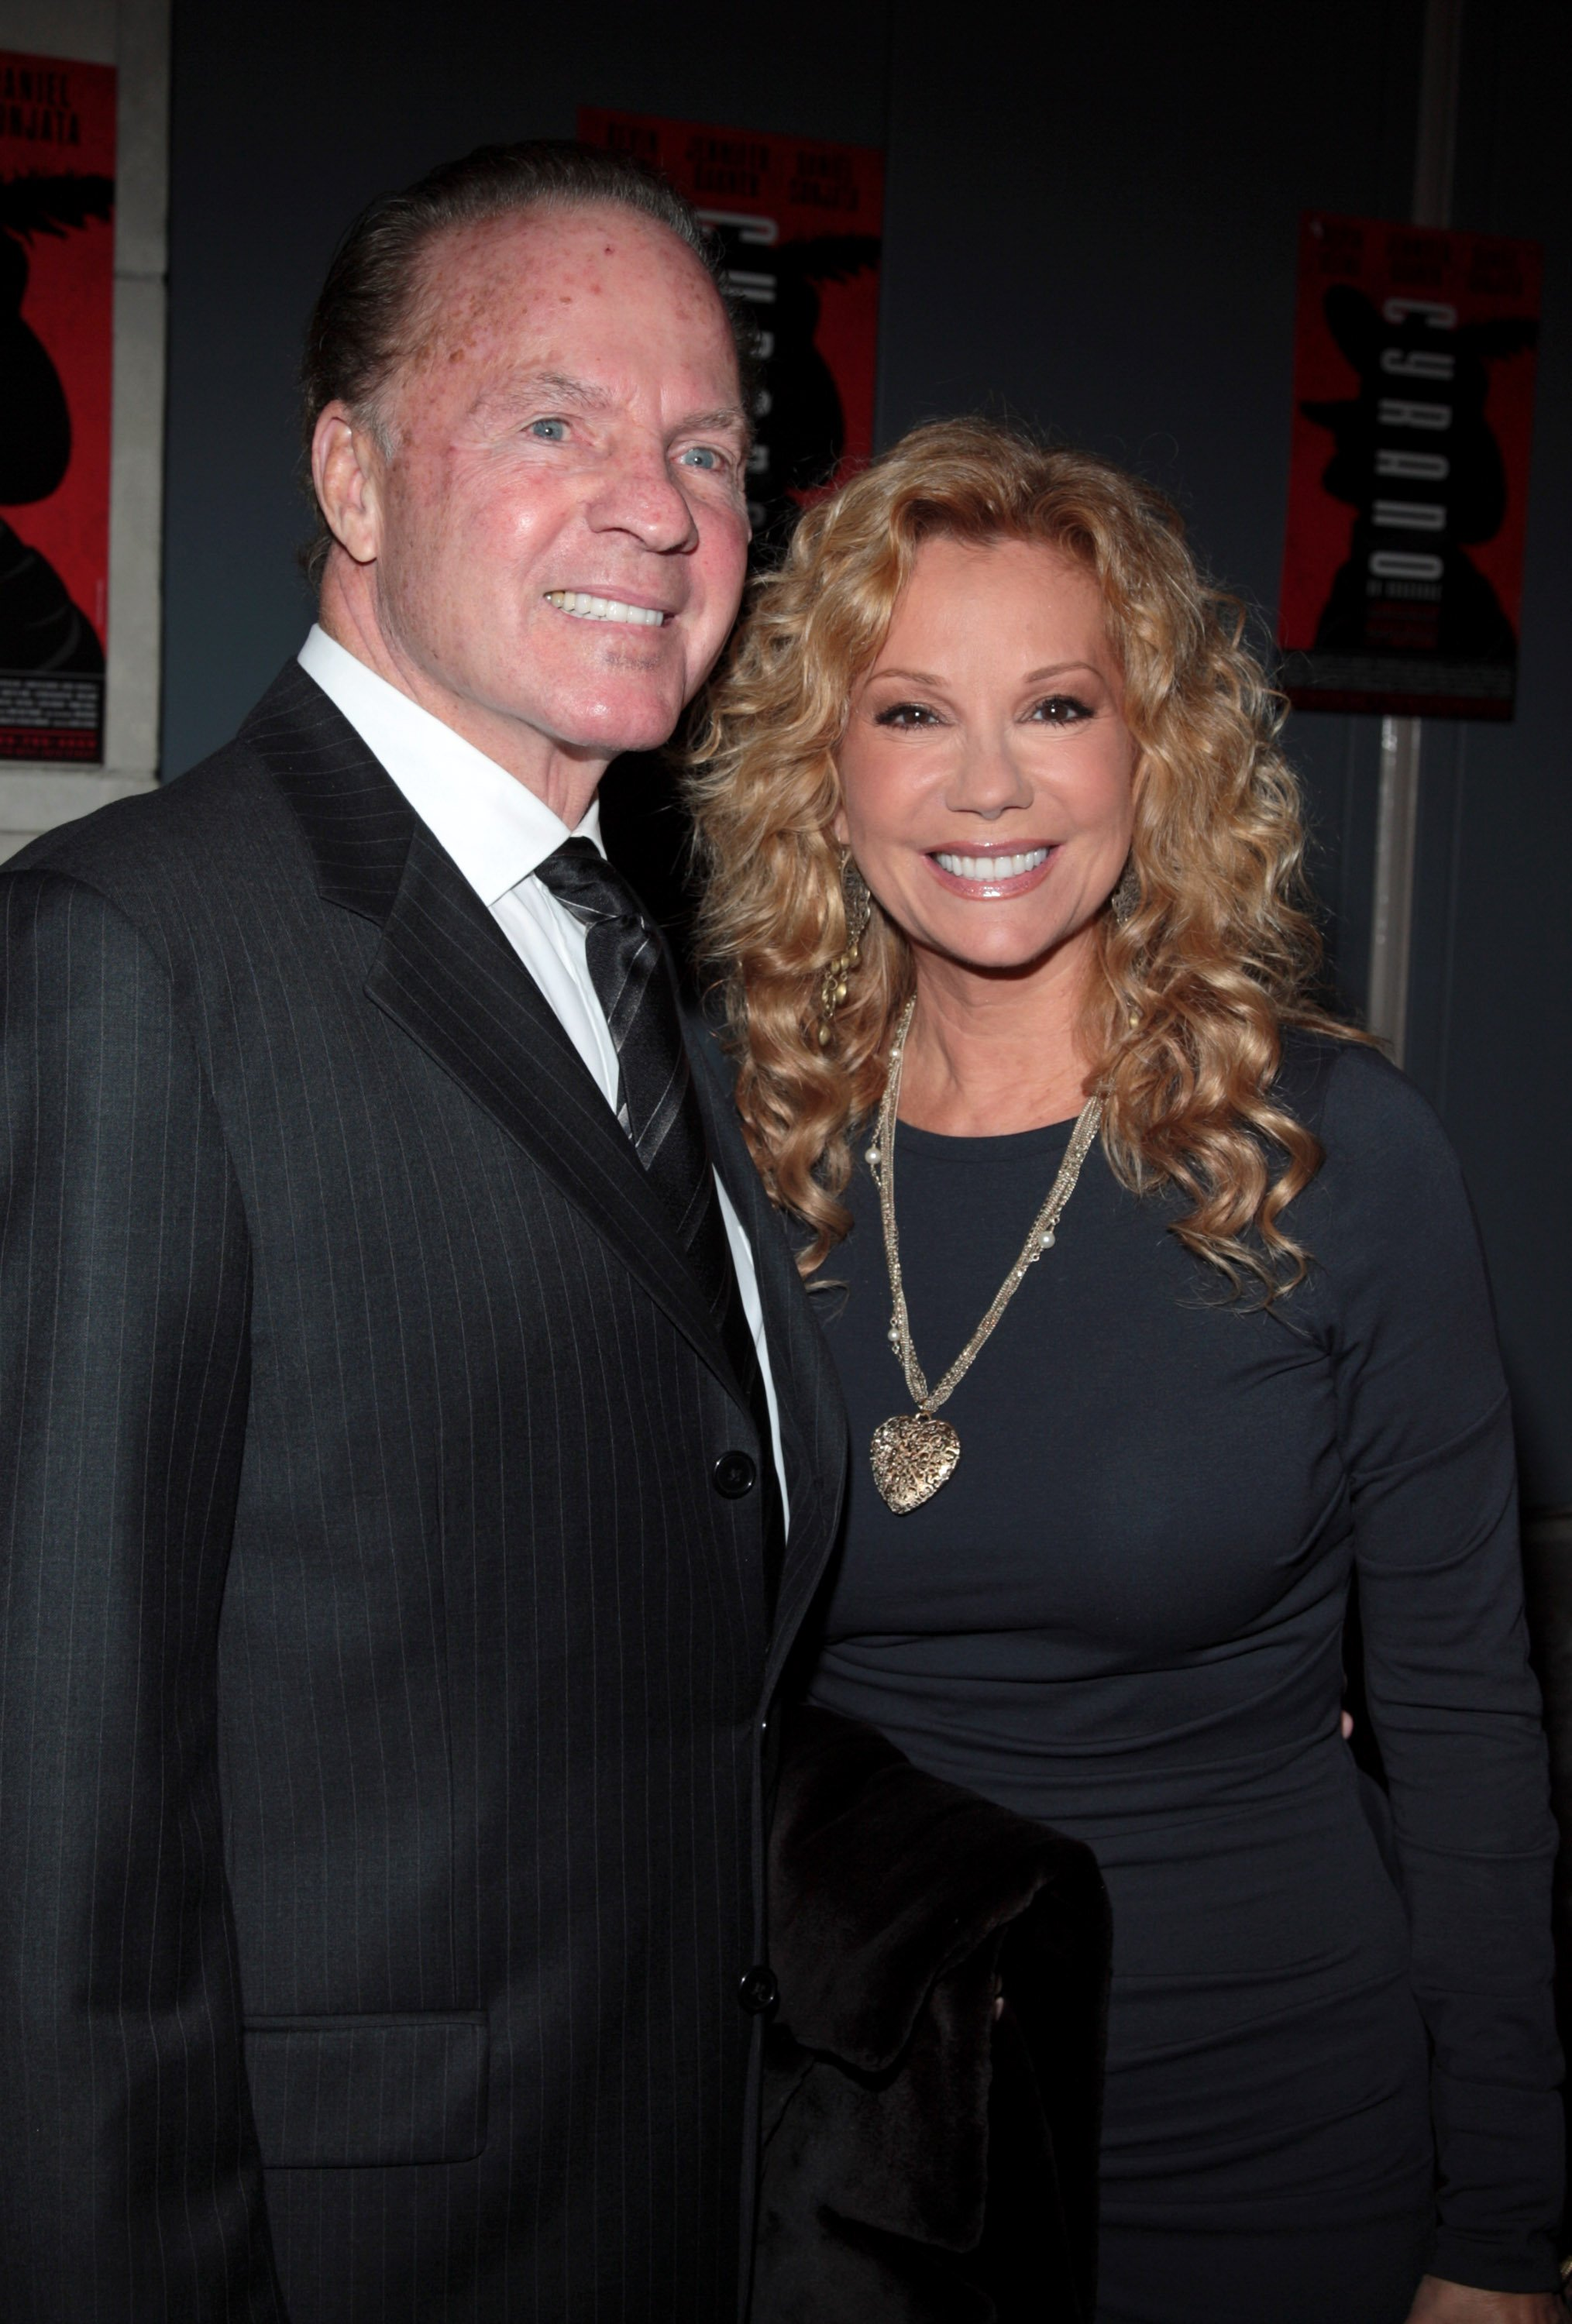 Kathie Lee Gifford and husband Frank Gifford   Photo: Getty Images